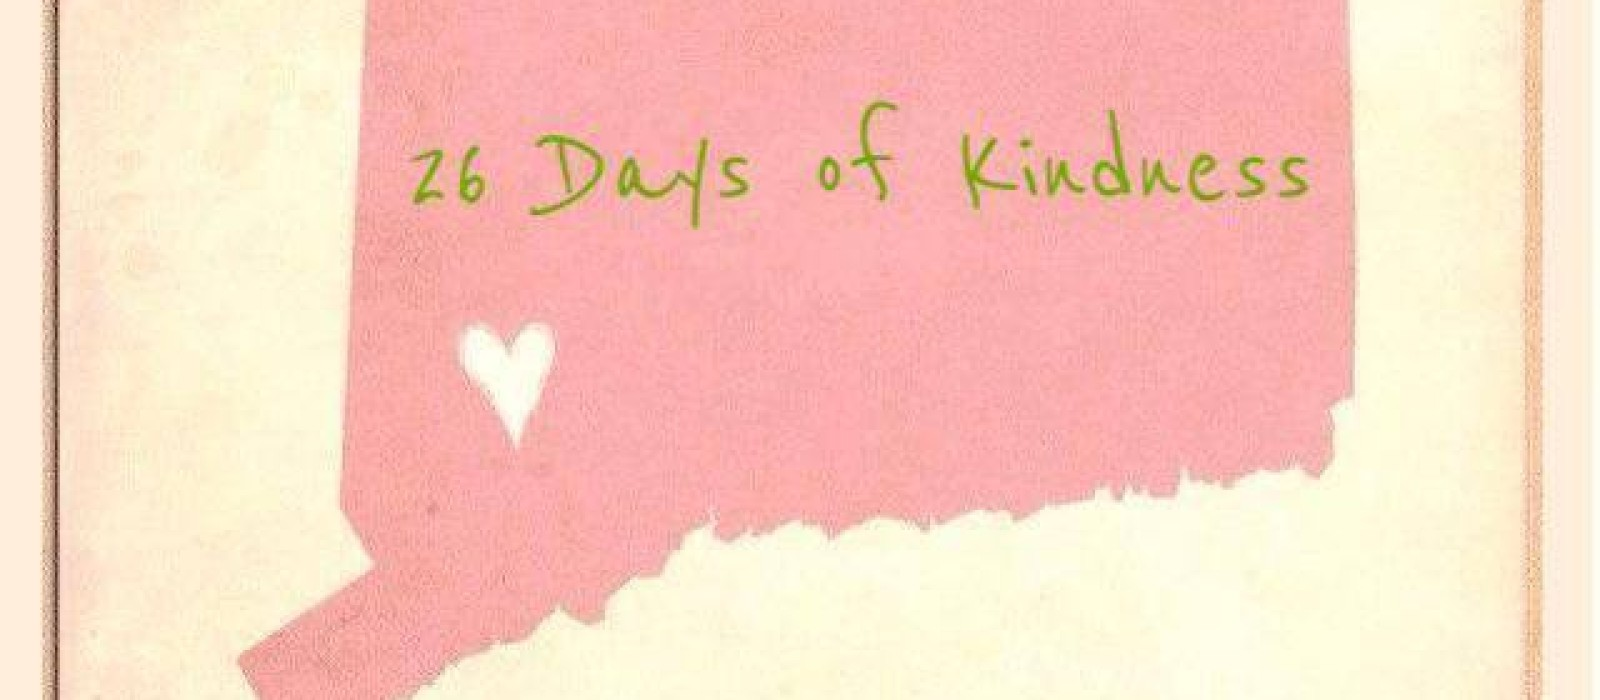 26 Days of Kindness honor Sandy Hook victims